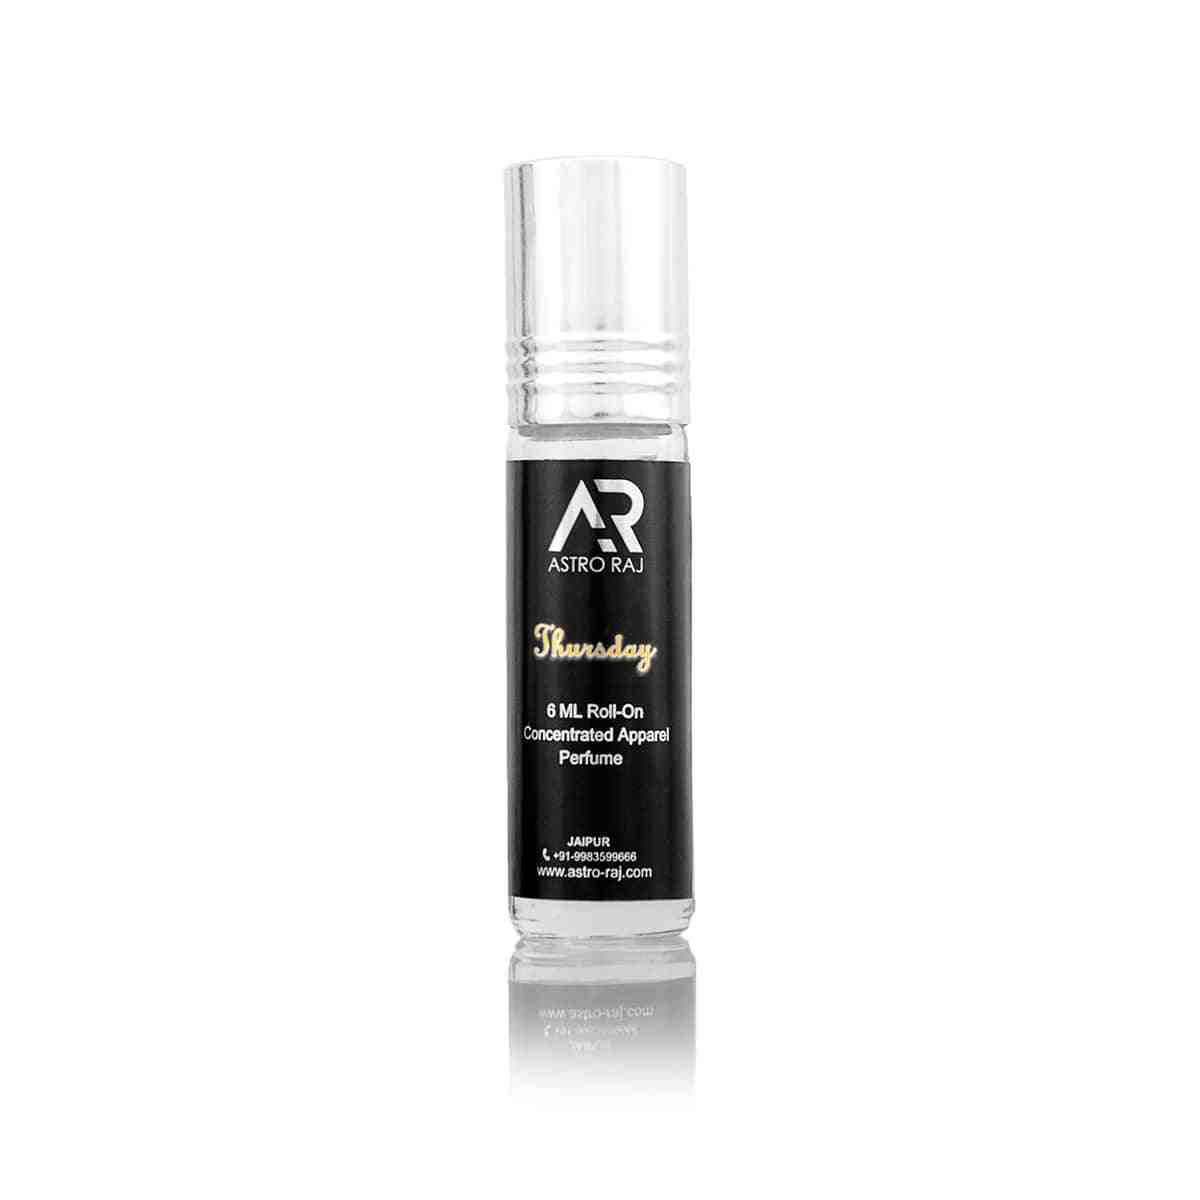 Thursday Special Natural Fragrance Roll-On Perfume